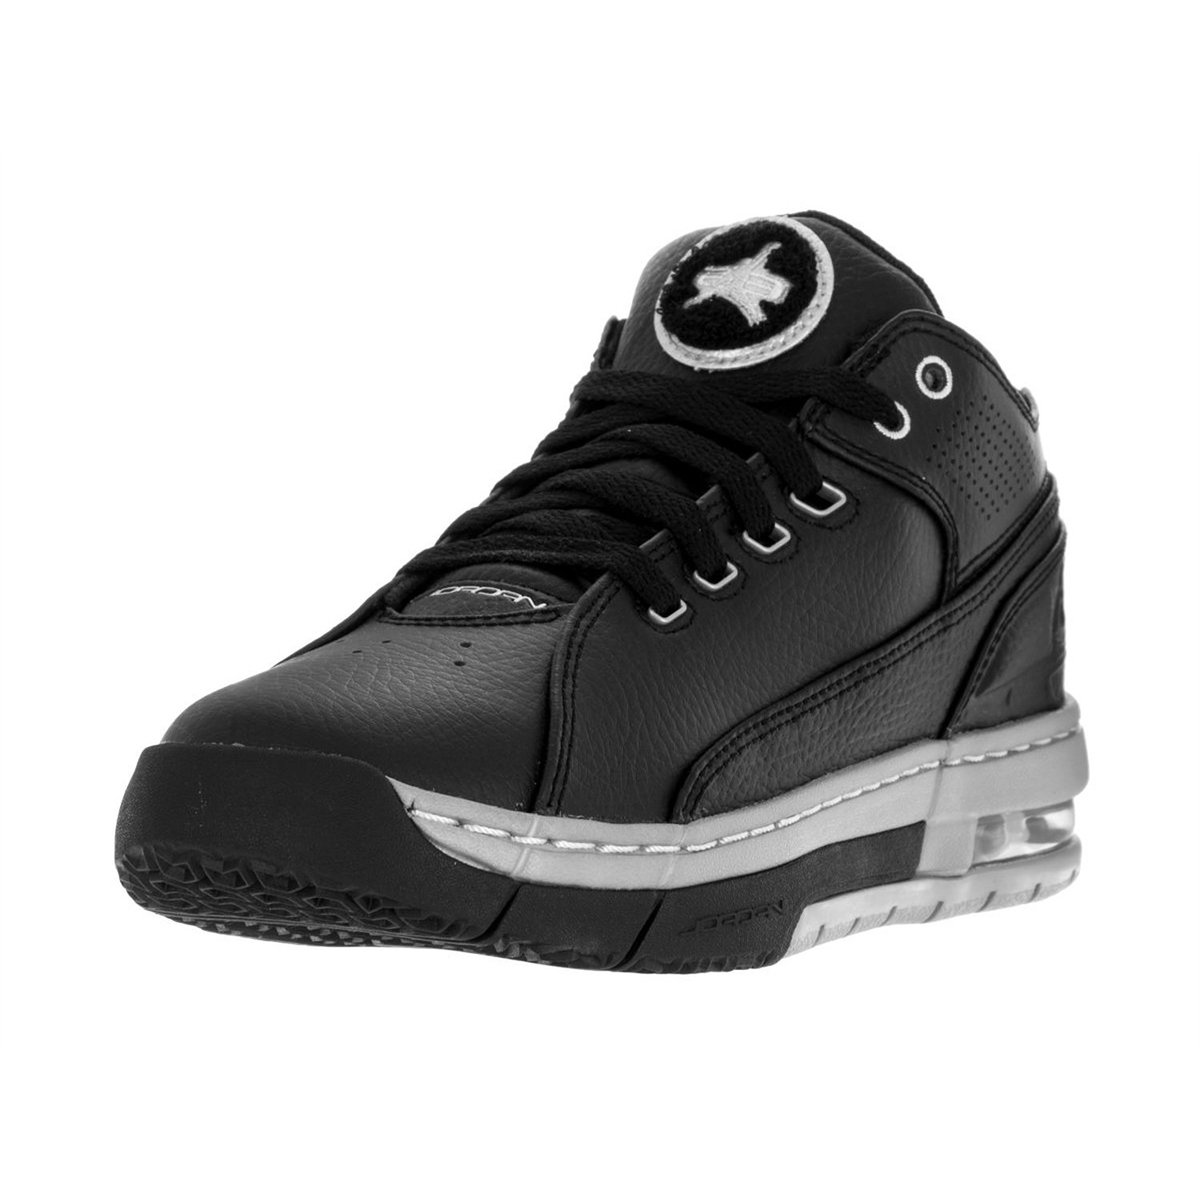 Jordan Nike Kids' Ol'School Low Black and Silver Synthetic Leather Basketball Shoes 4 by Jordan